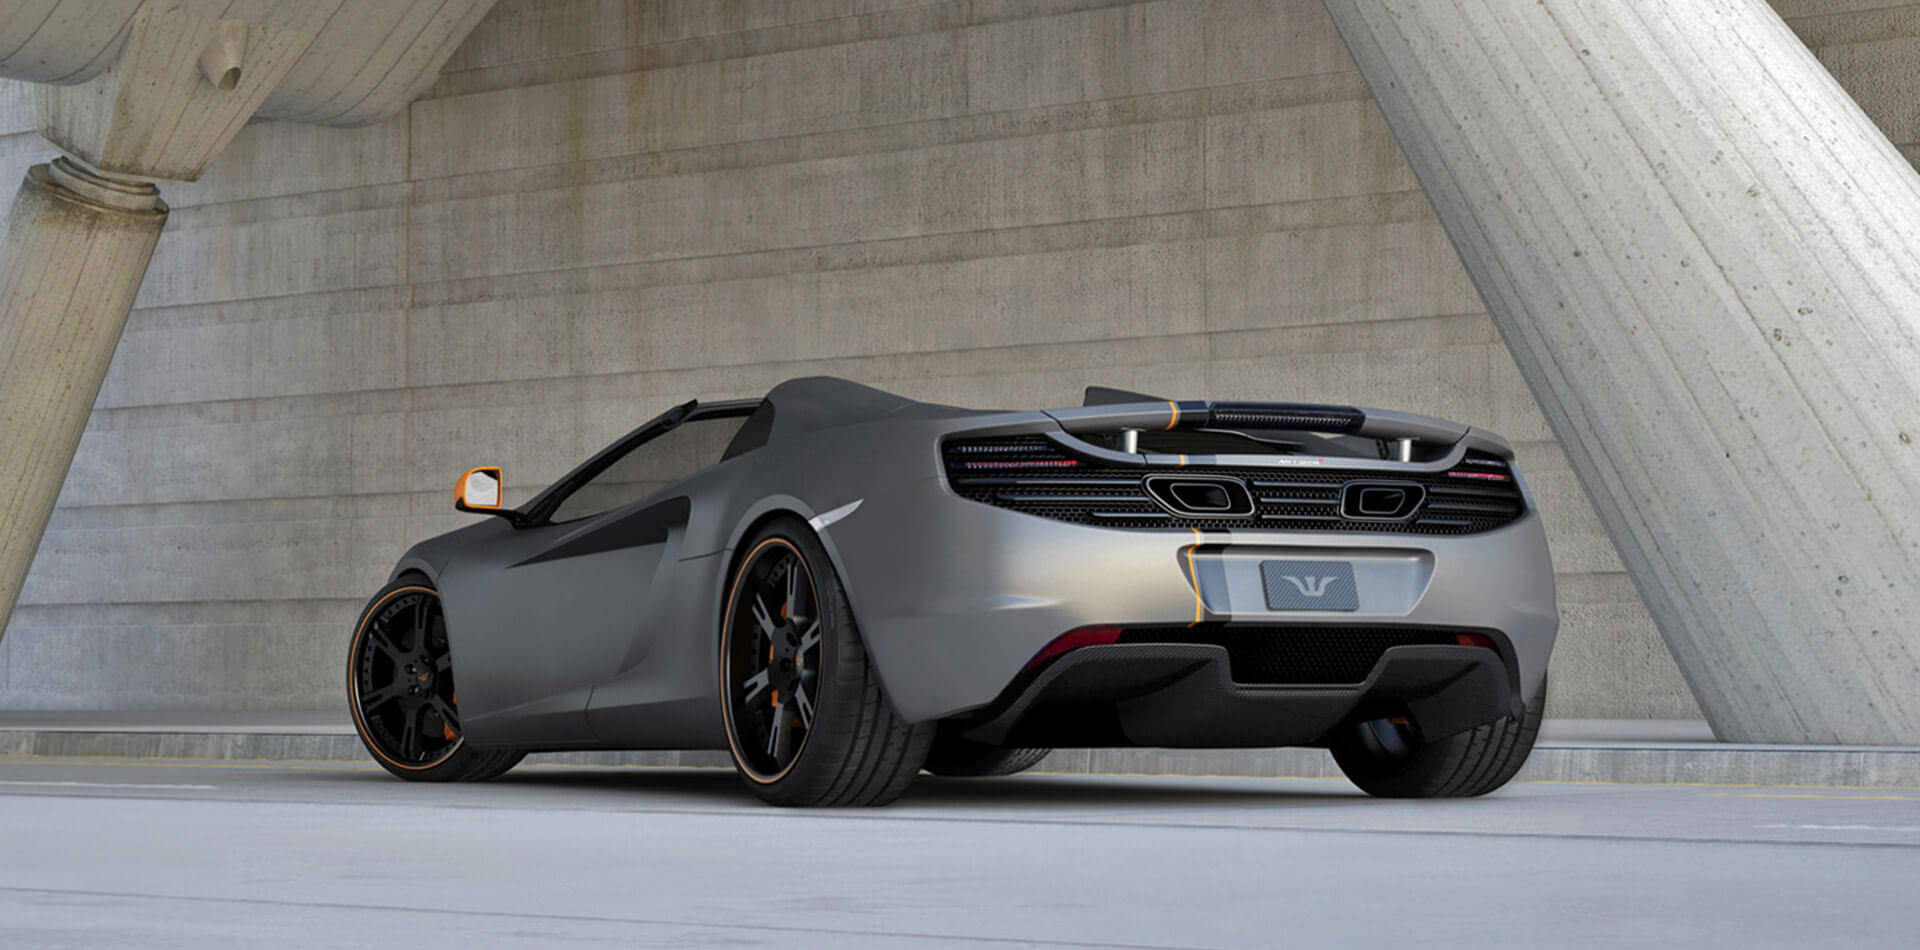 Auspuffanlage_McLaren_MP4-12C_Spider-2013